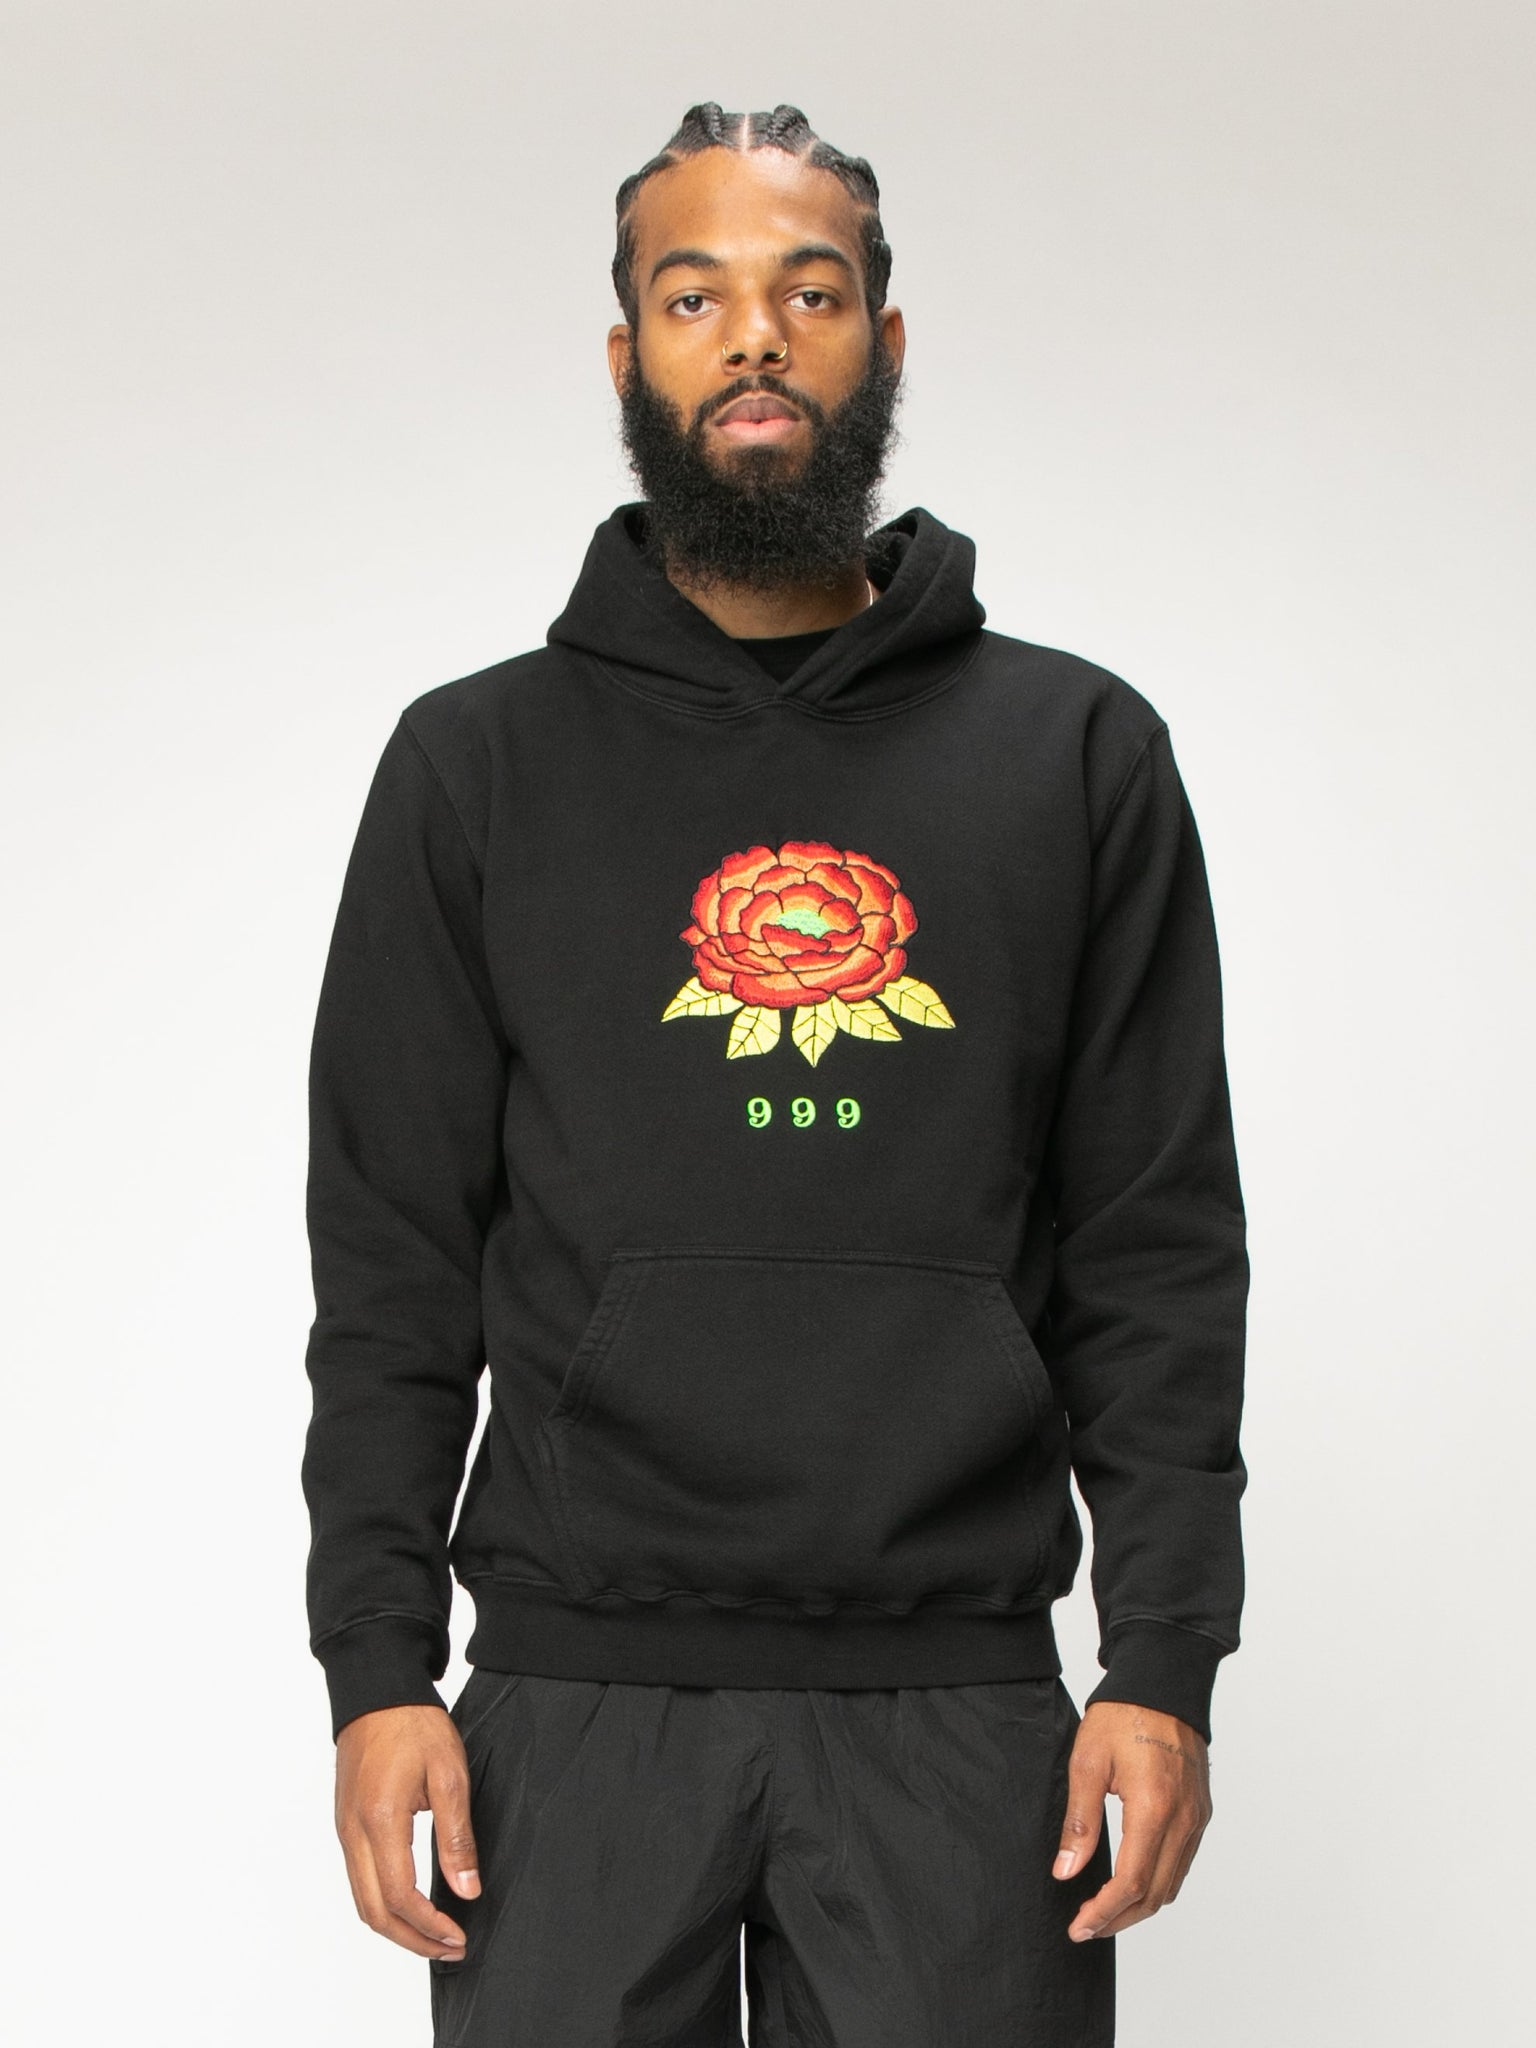 999-embrodered-hoody